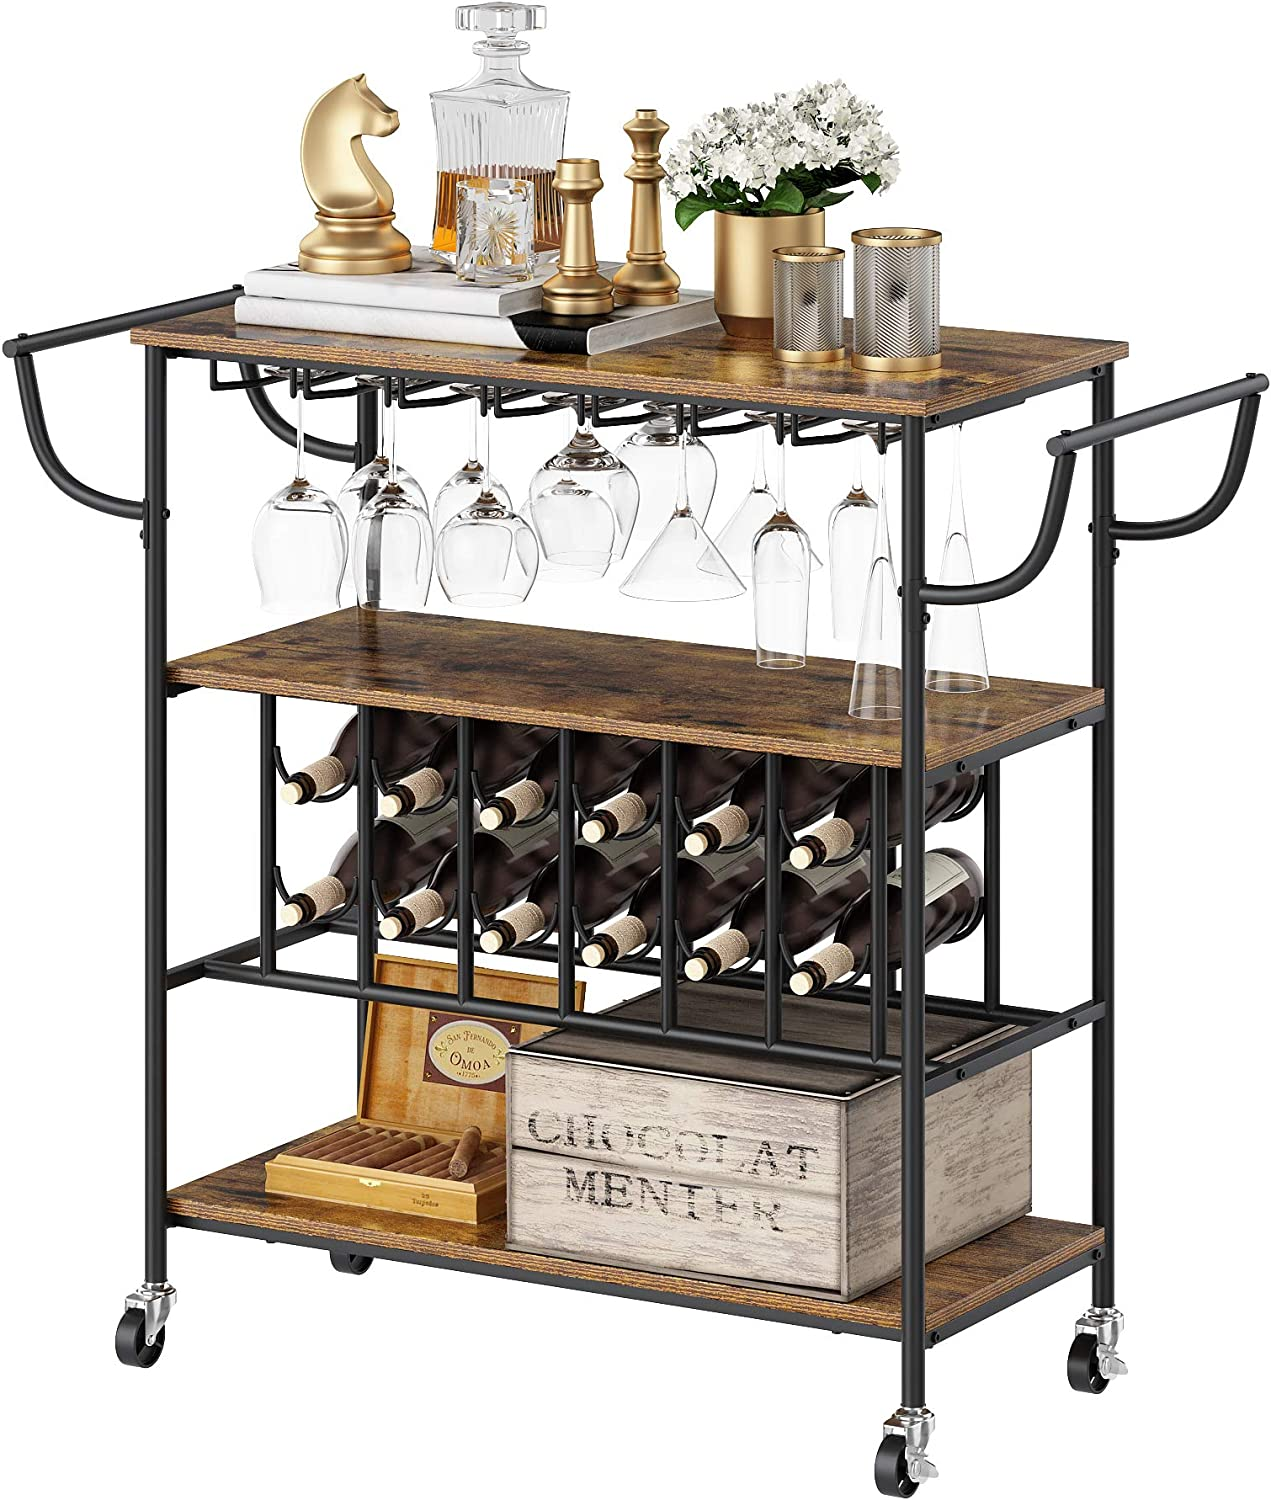 YUSONG Industrial Bar Cart on Wheels for The Home with Wine Rack and Glass Holder,Utility Kitchen Serving Cart and Kitchen Storage Cart with 3 Shelves,Rustic Brown